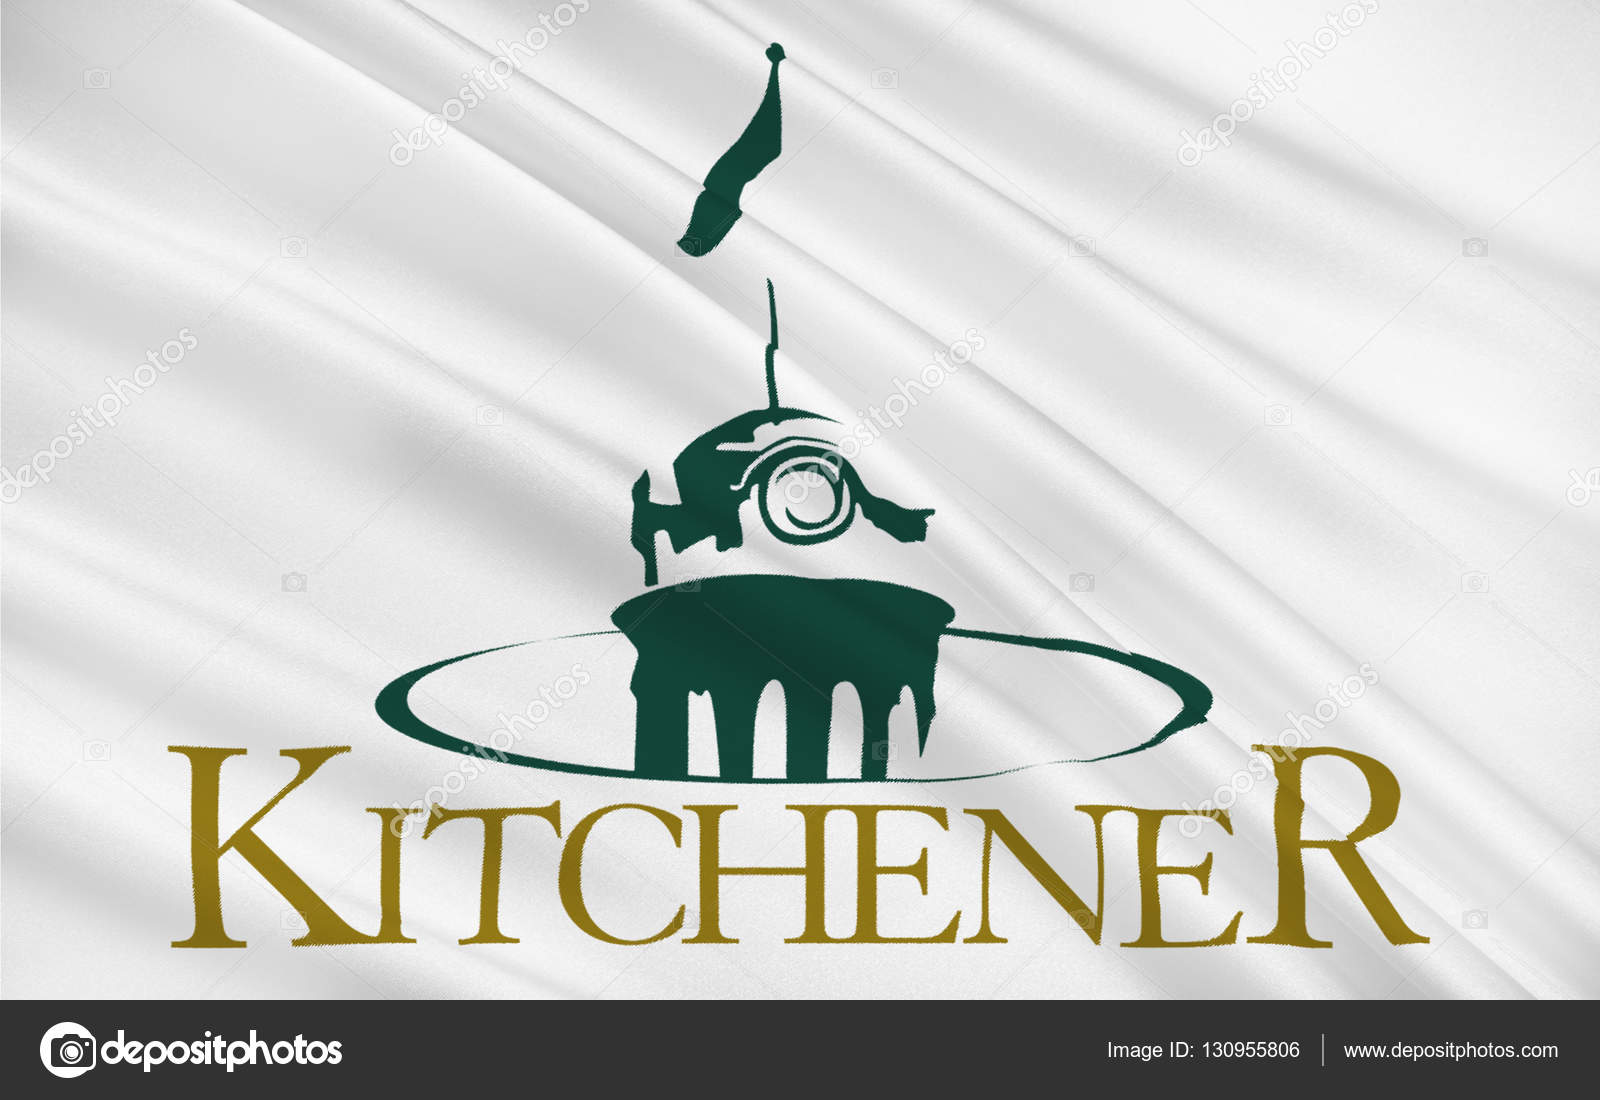 Flag of Kitchener Ontario, Canada — Stock Photo © zloyel #130955806